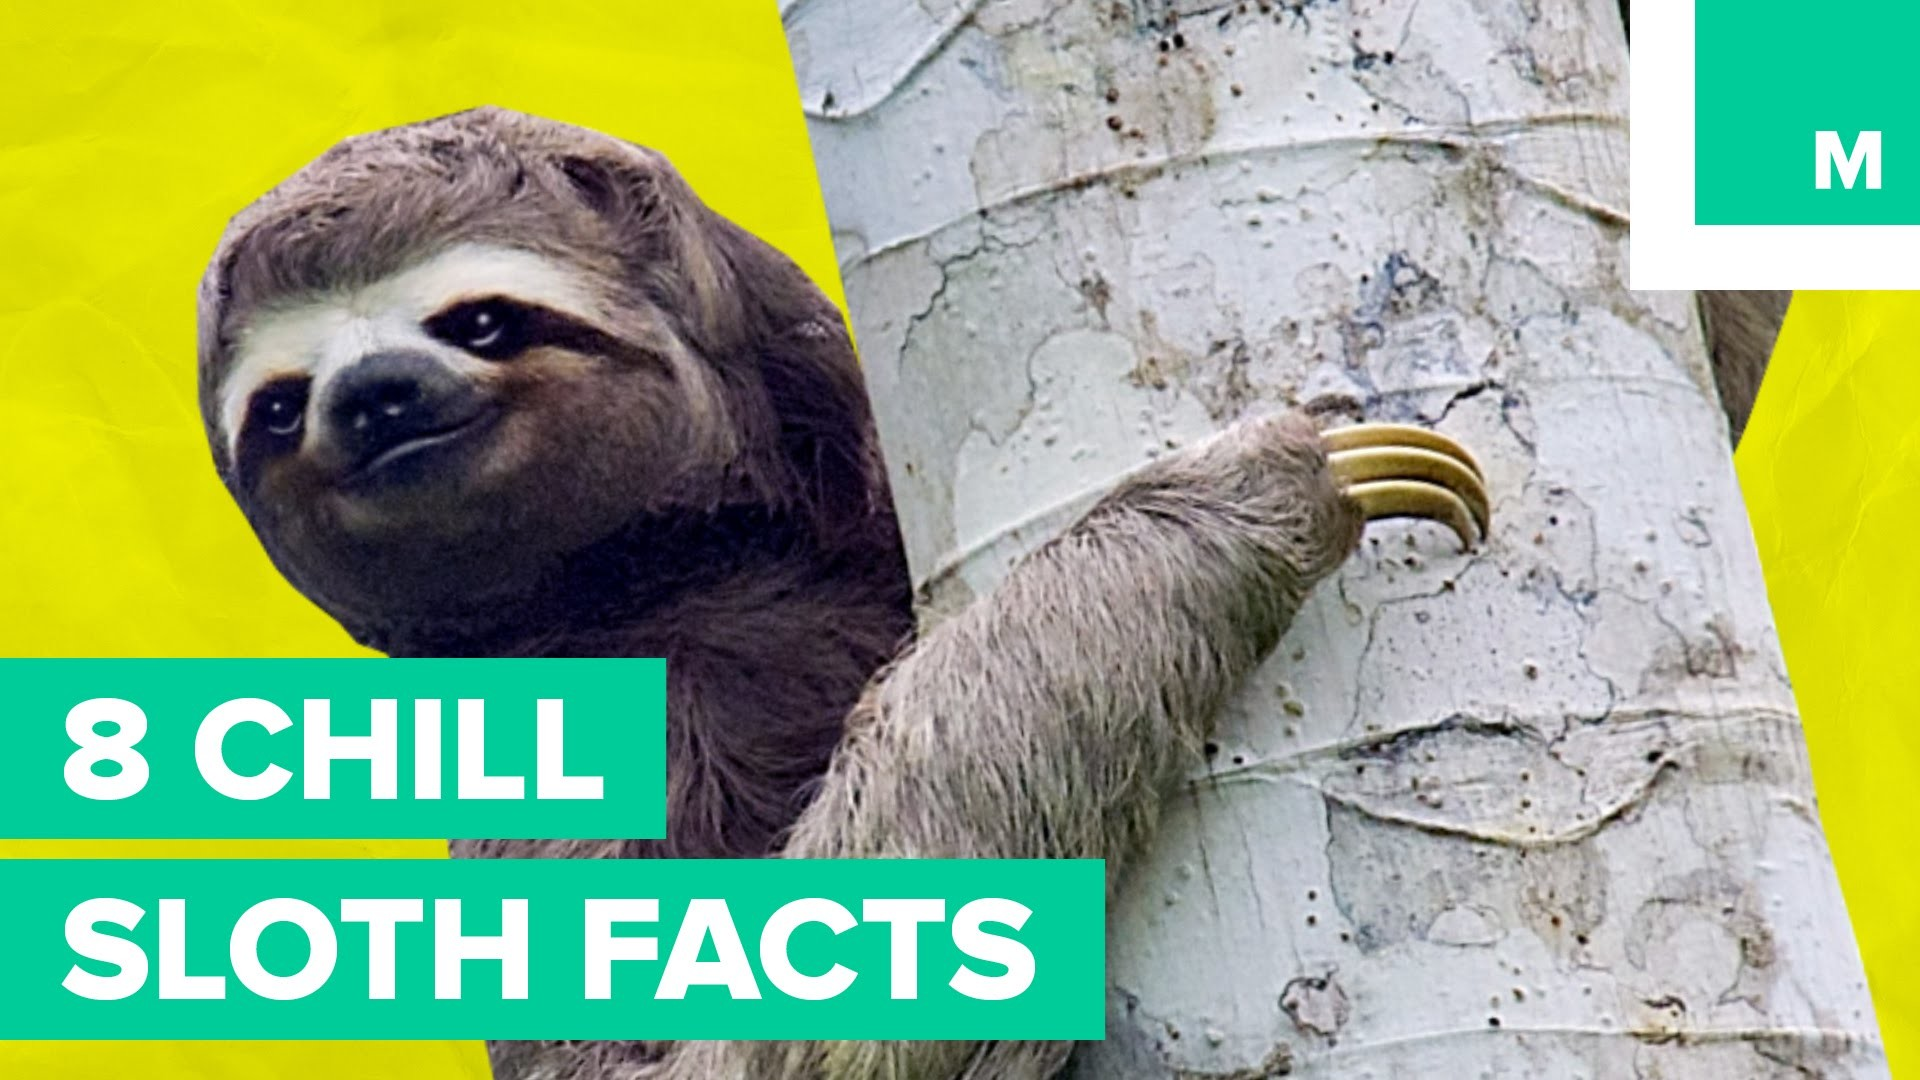 1920x1080 8 Chill Sloth Facts | Fuzzy Friday